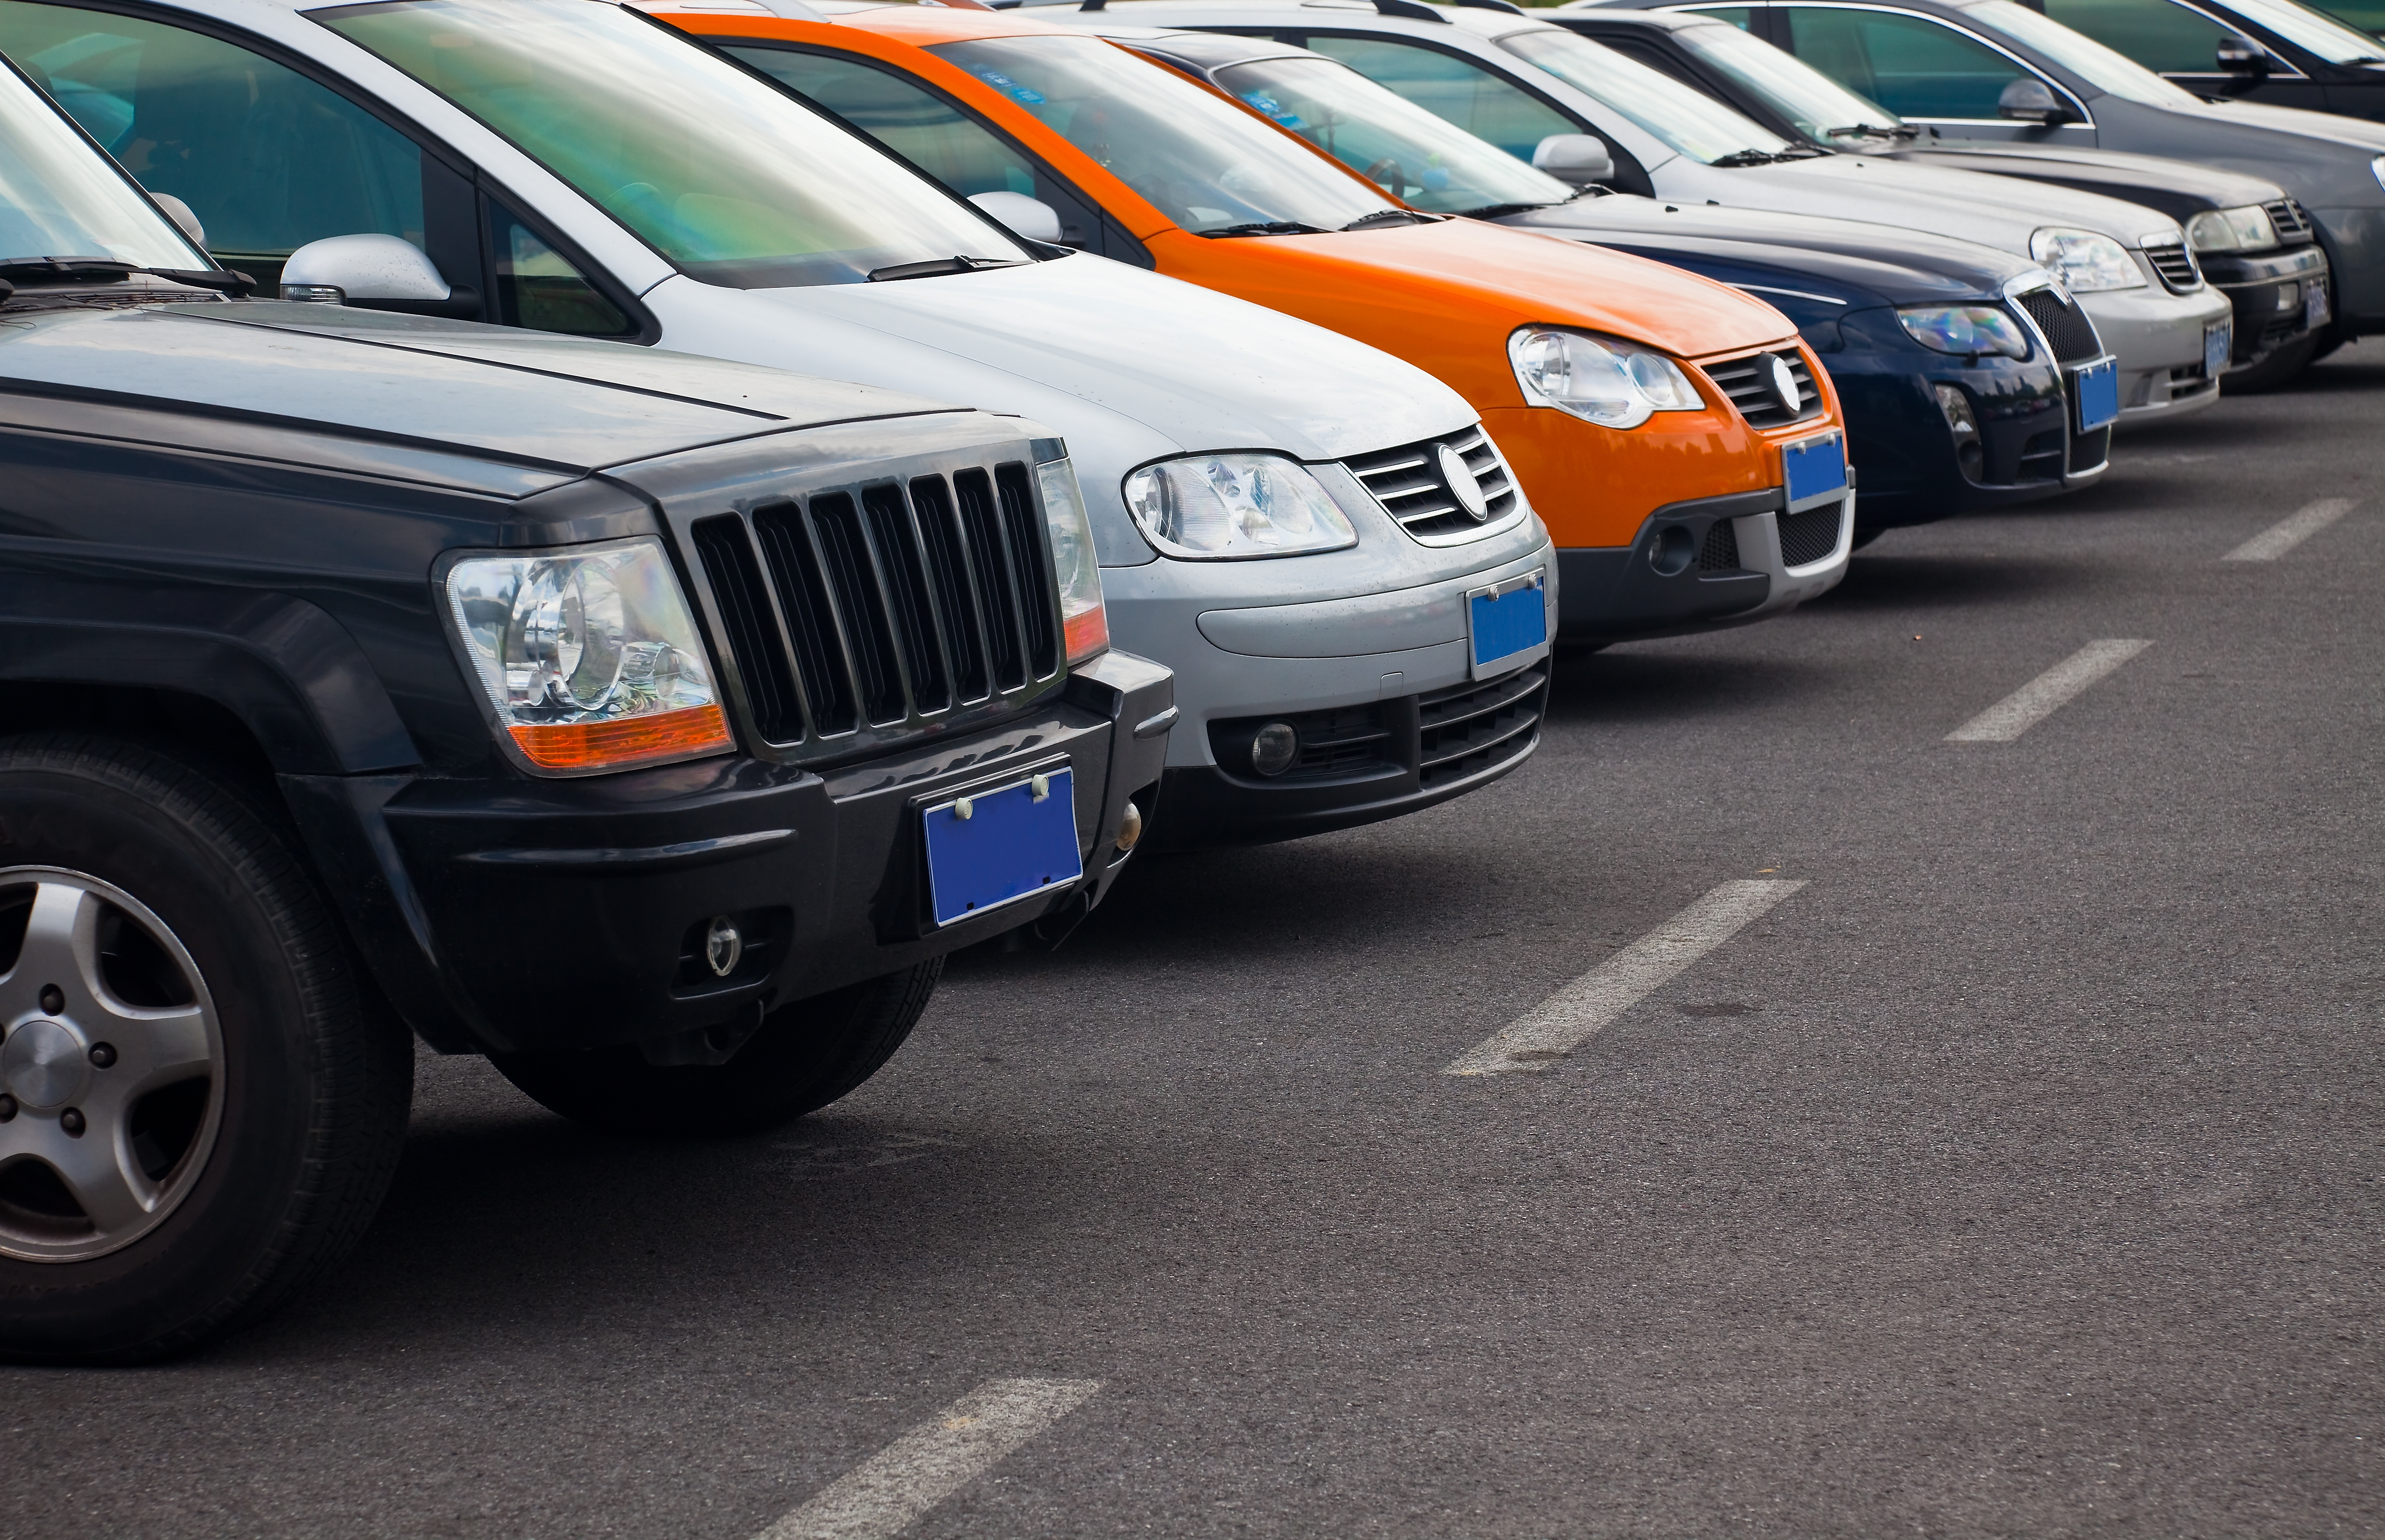 There Are Two Arizona Wholesale Dealer License Types Available: Arizona  Wholesale Dealer  Dealer That Cannot Sell Vehicles To The General Public,